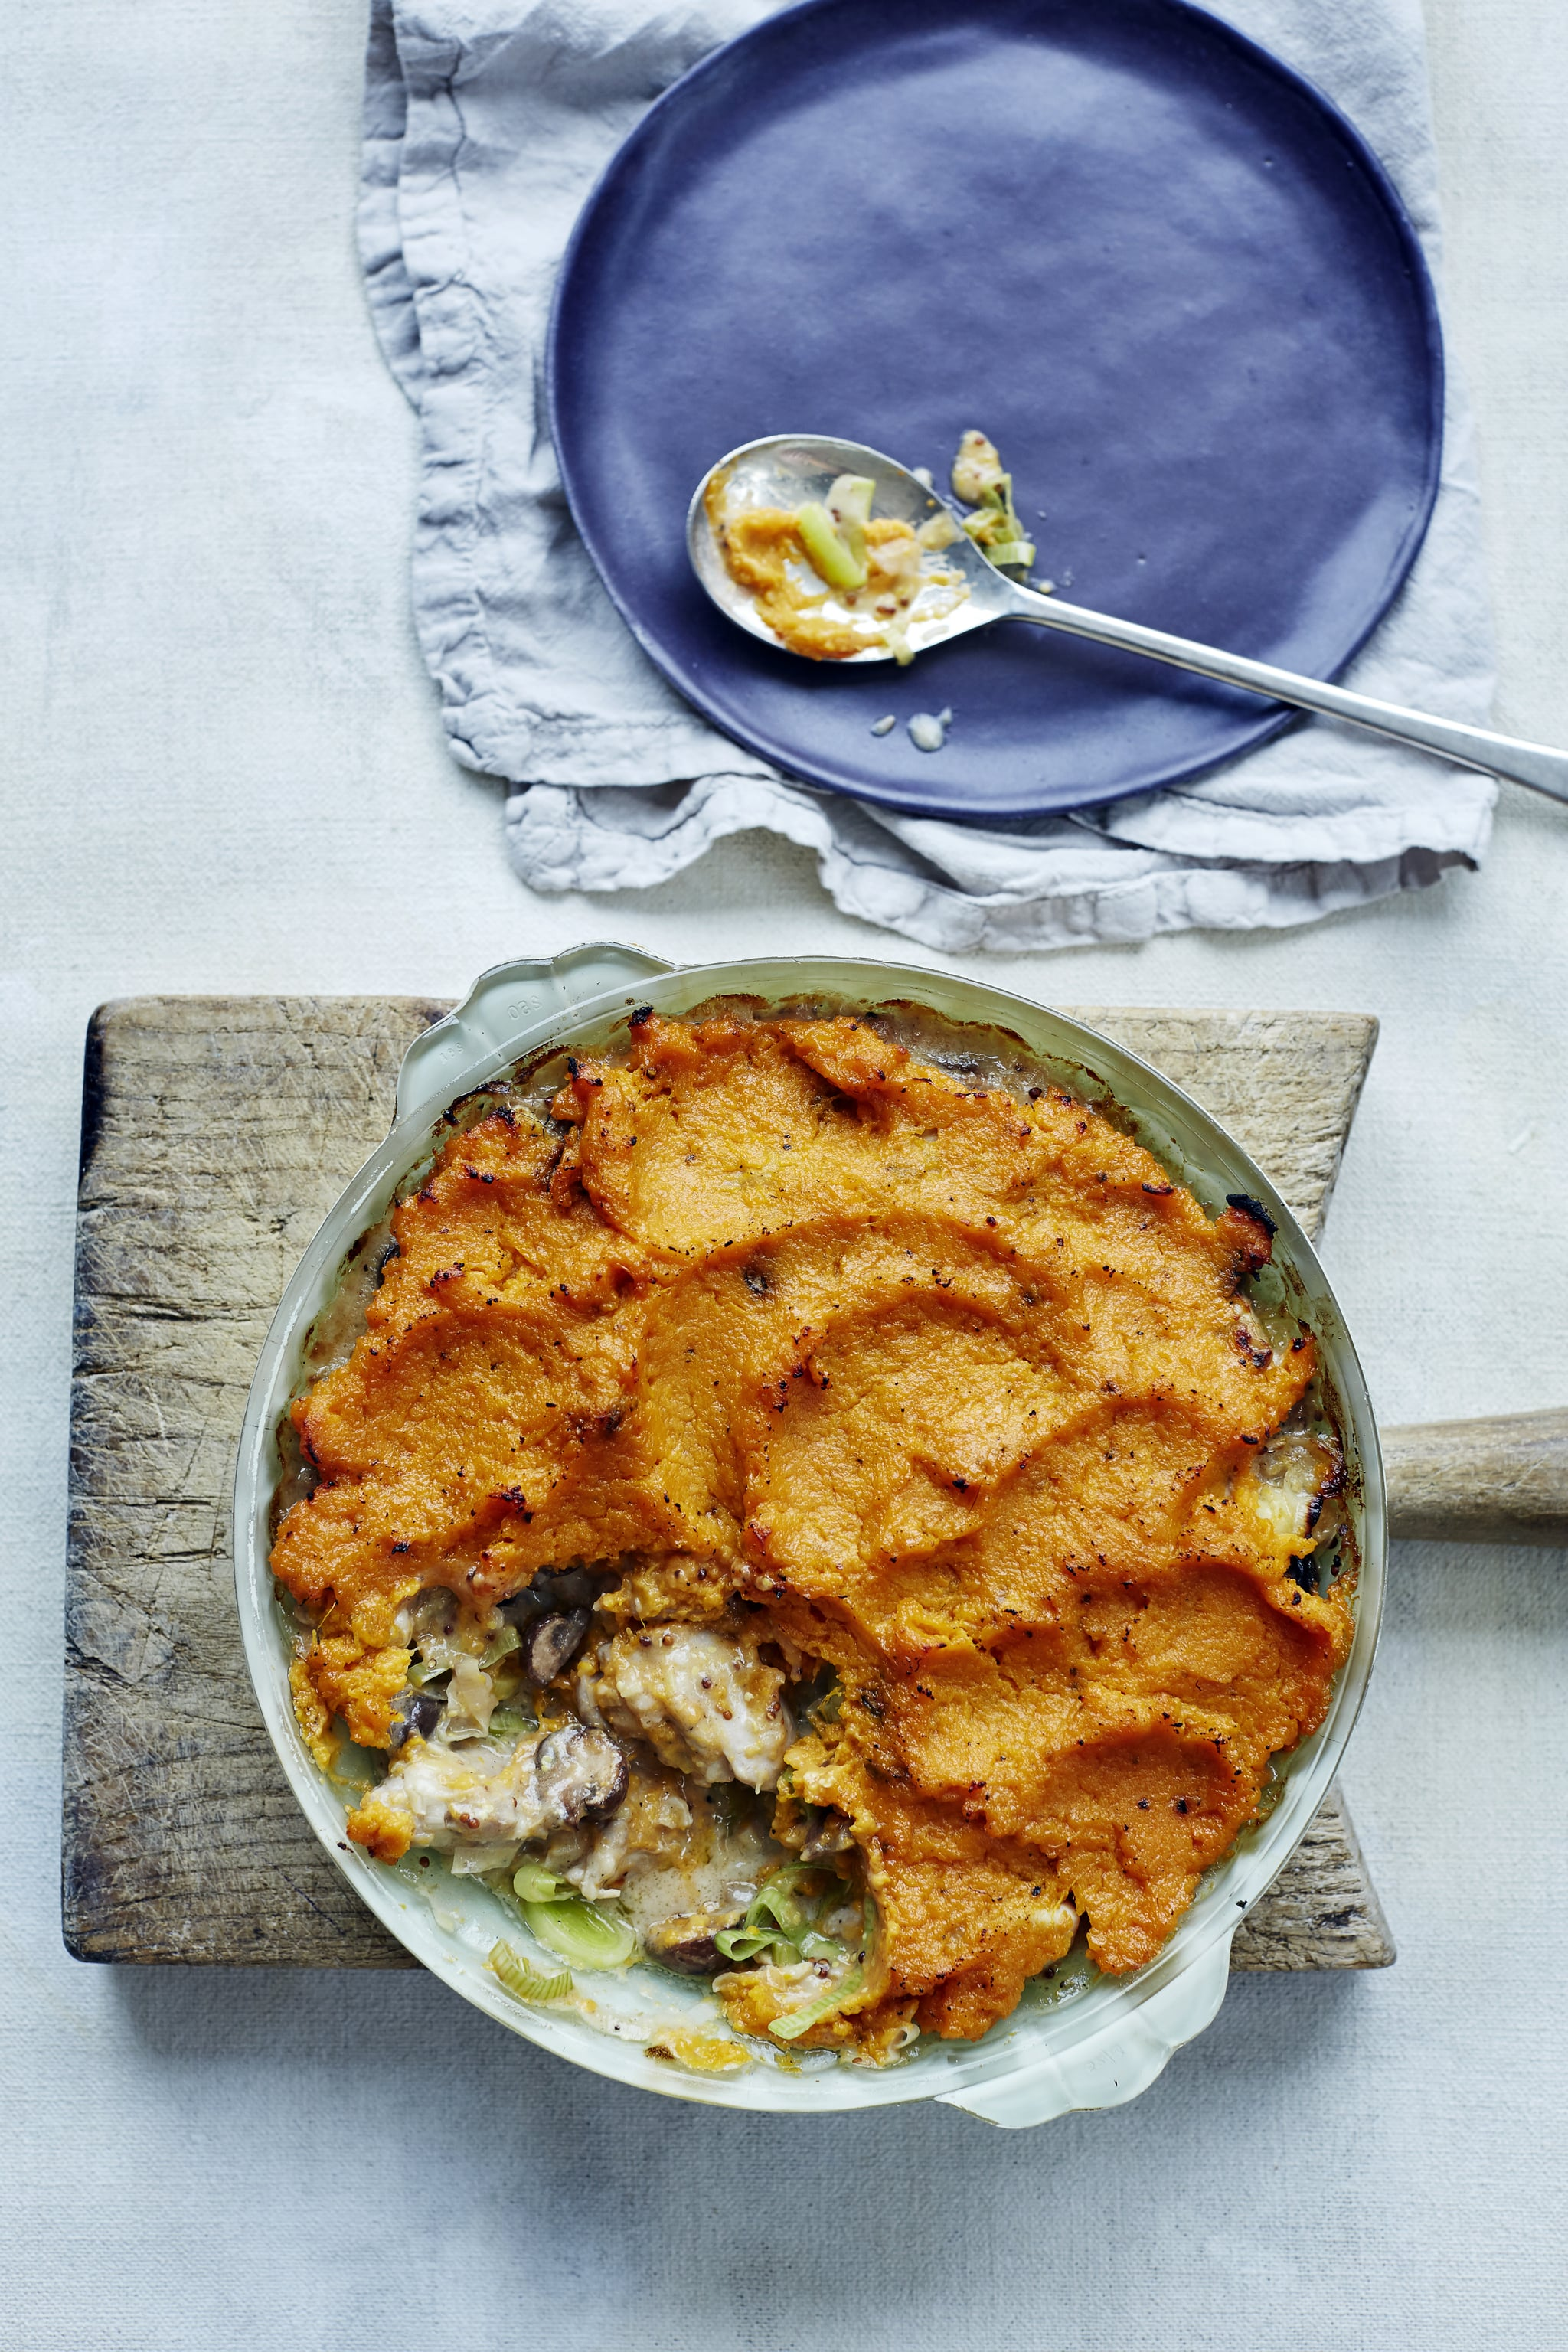 This Chicken Pie Puts a Light Twist on an Old Favourite